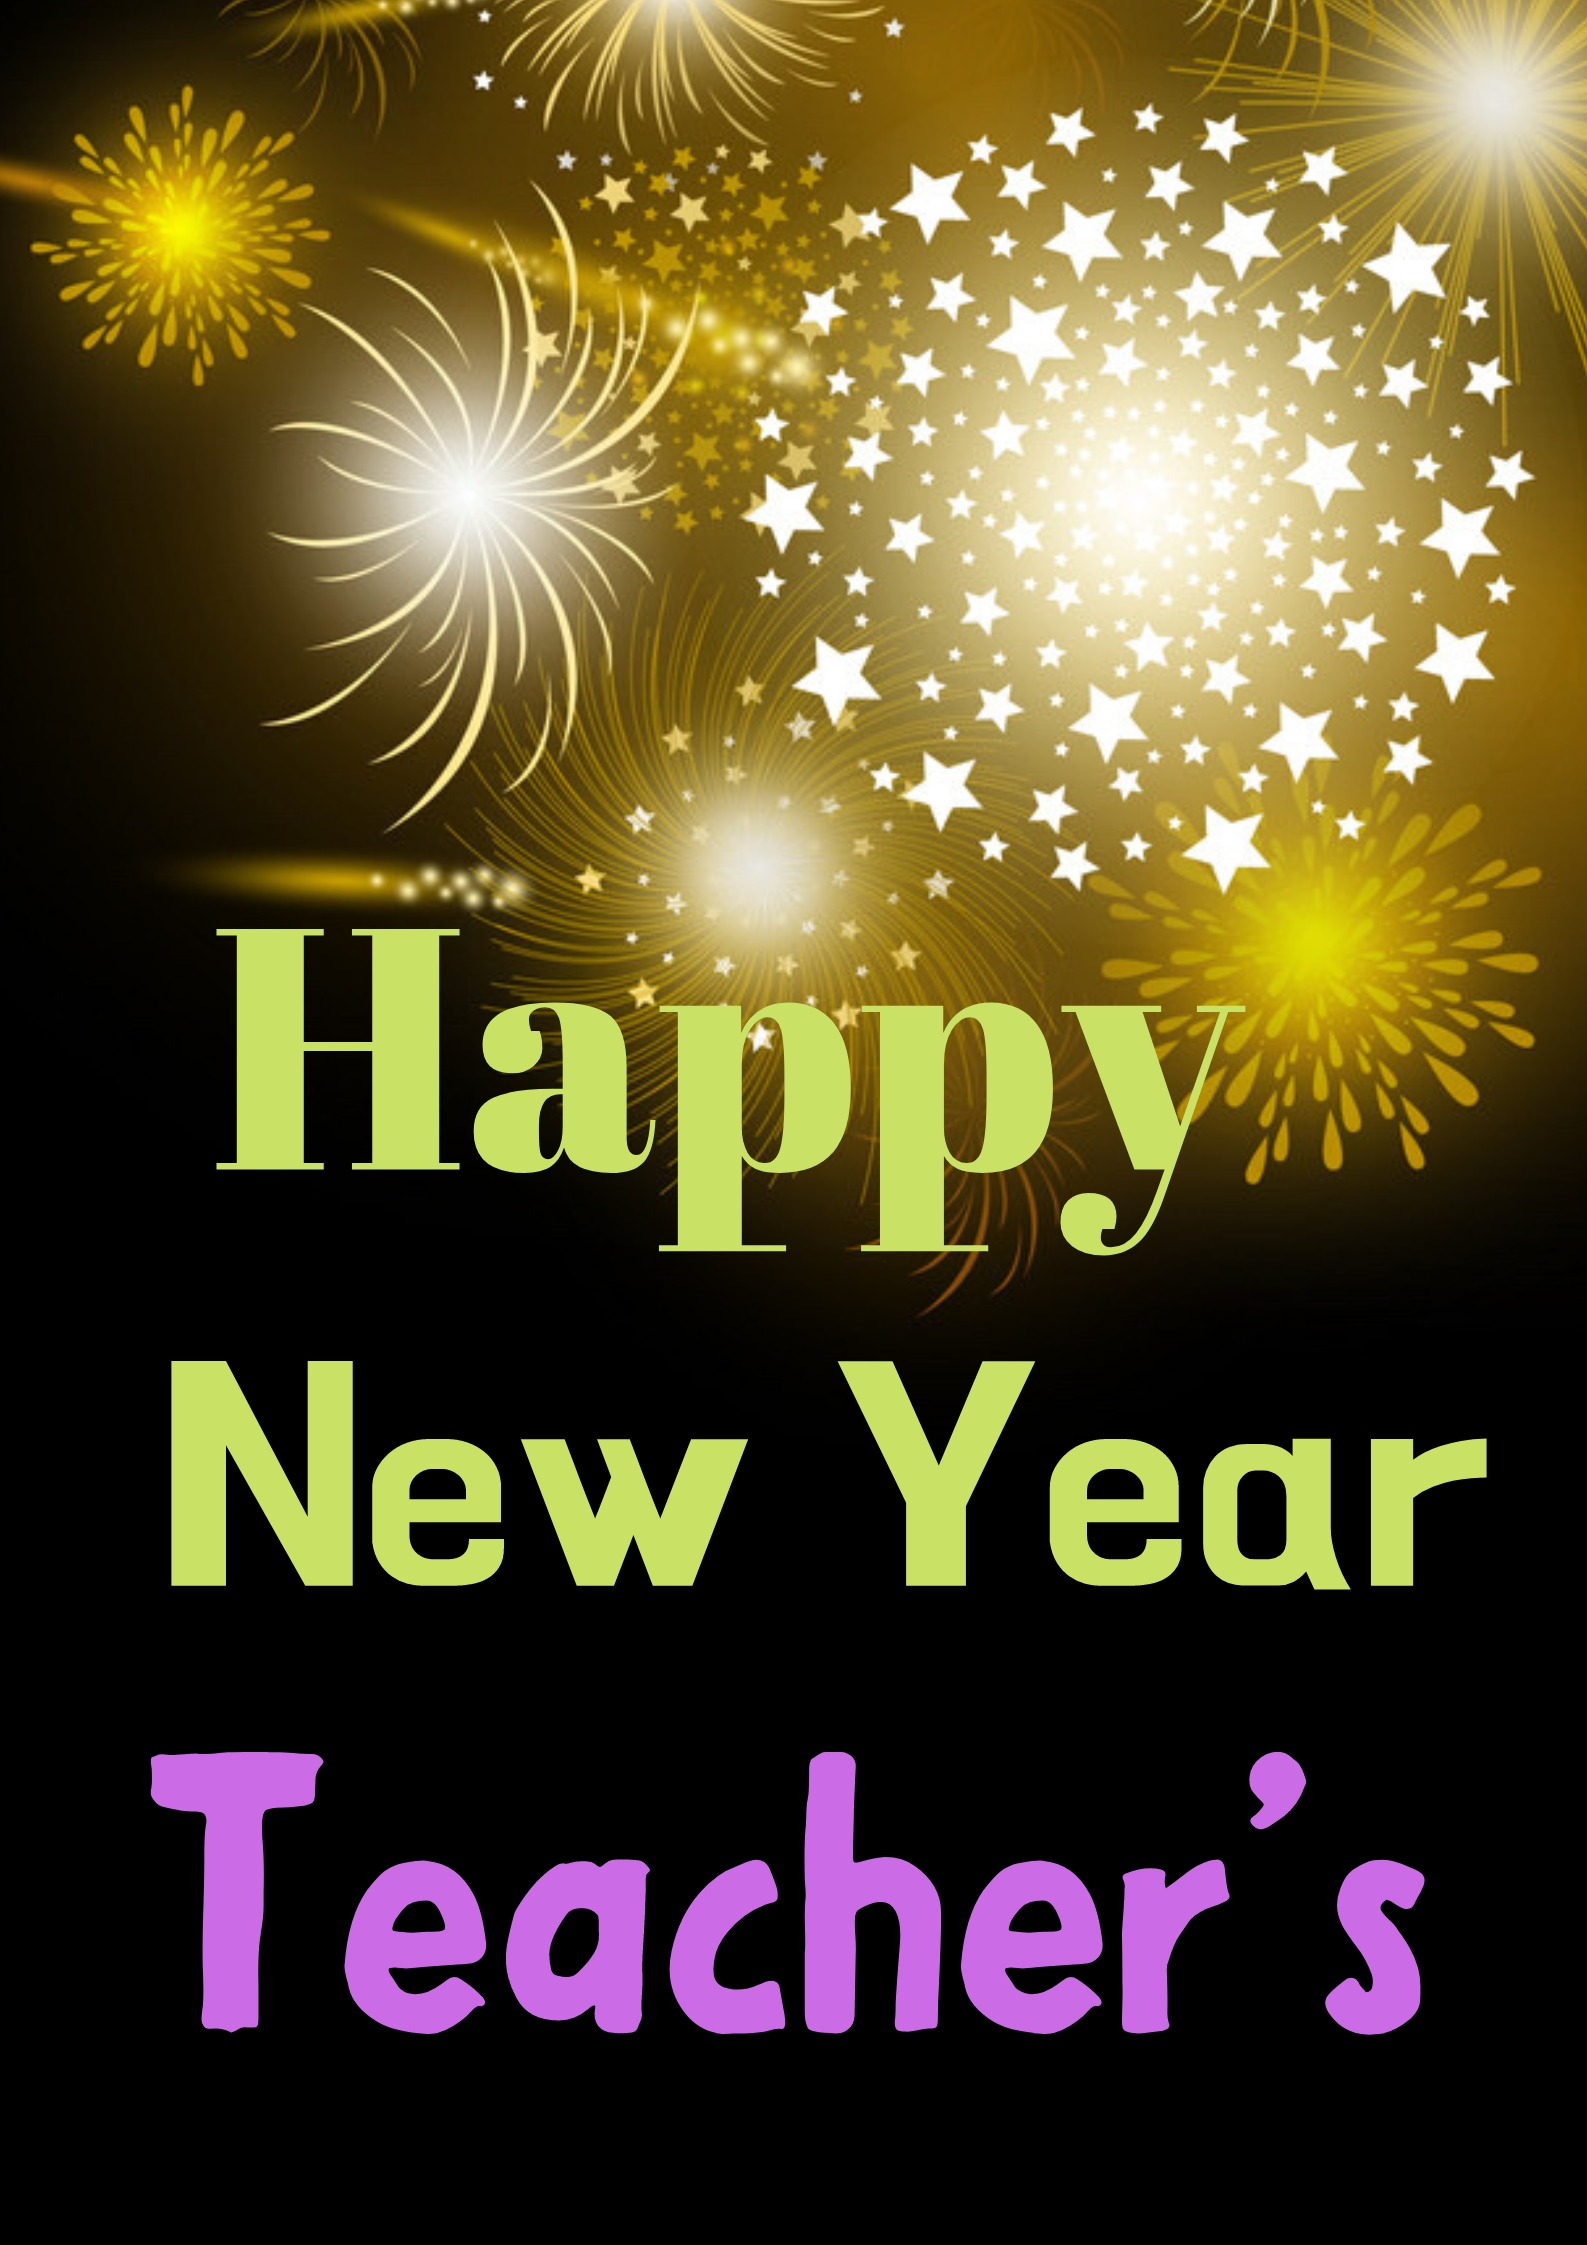 happy new year 2020 messages for teacher, happy new year 2020 images hd for teacher, happy new year wishes 2020 for teacher in Hindi